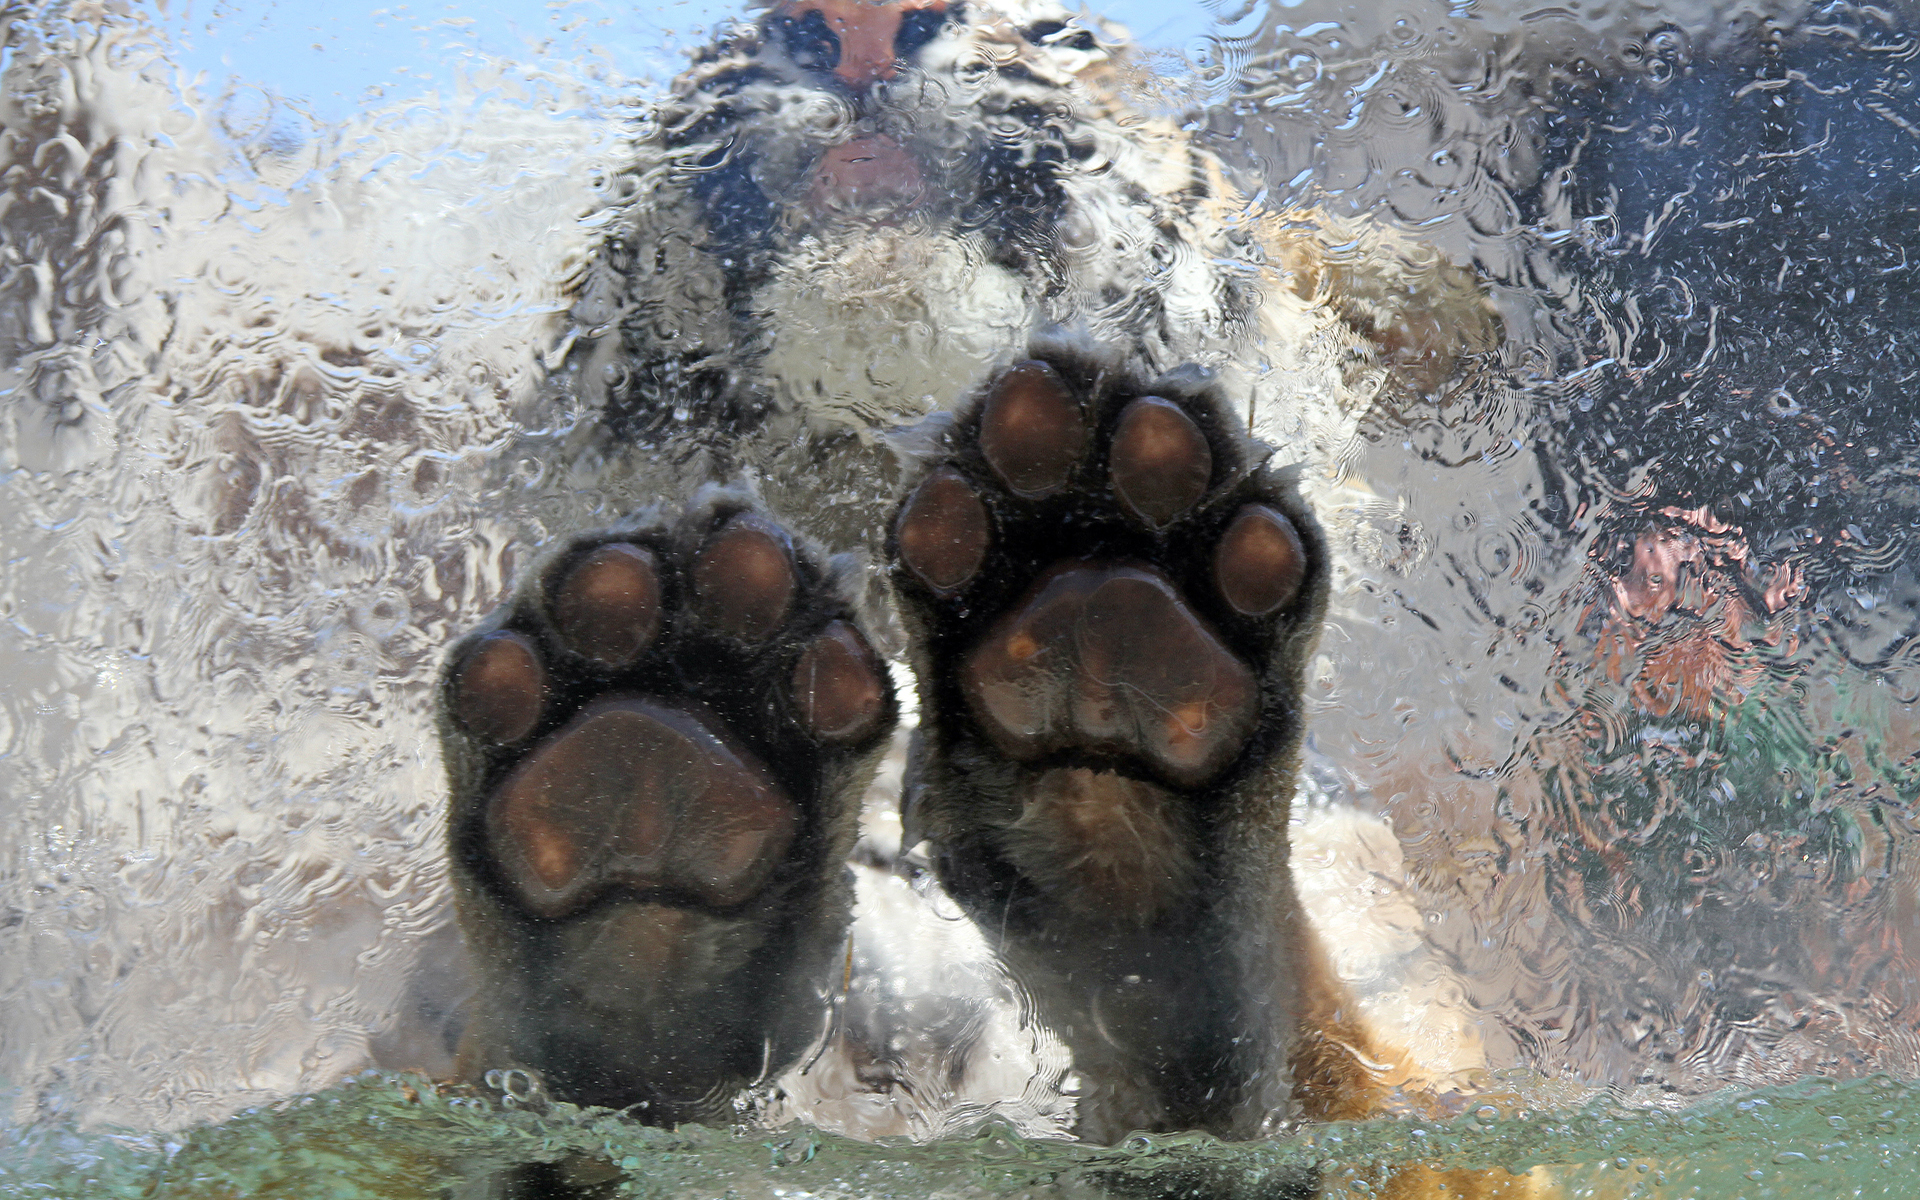 Tiger paws underwater